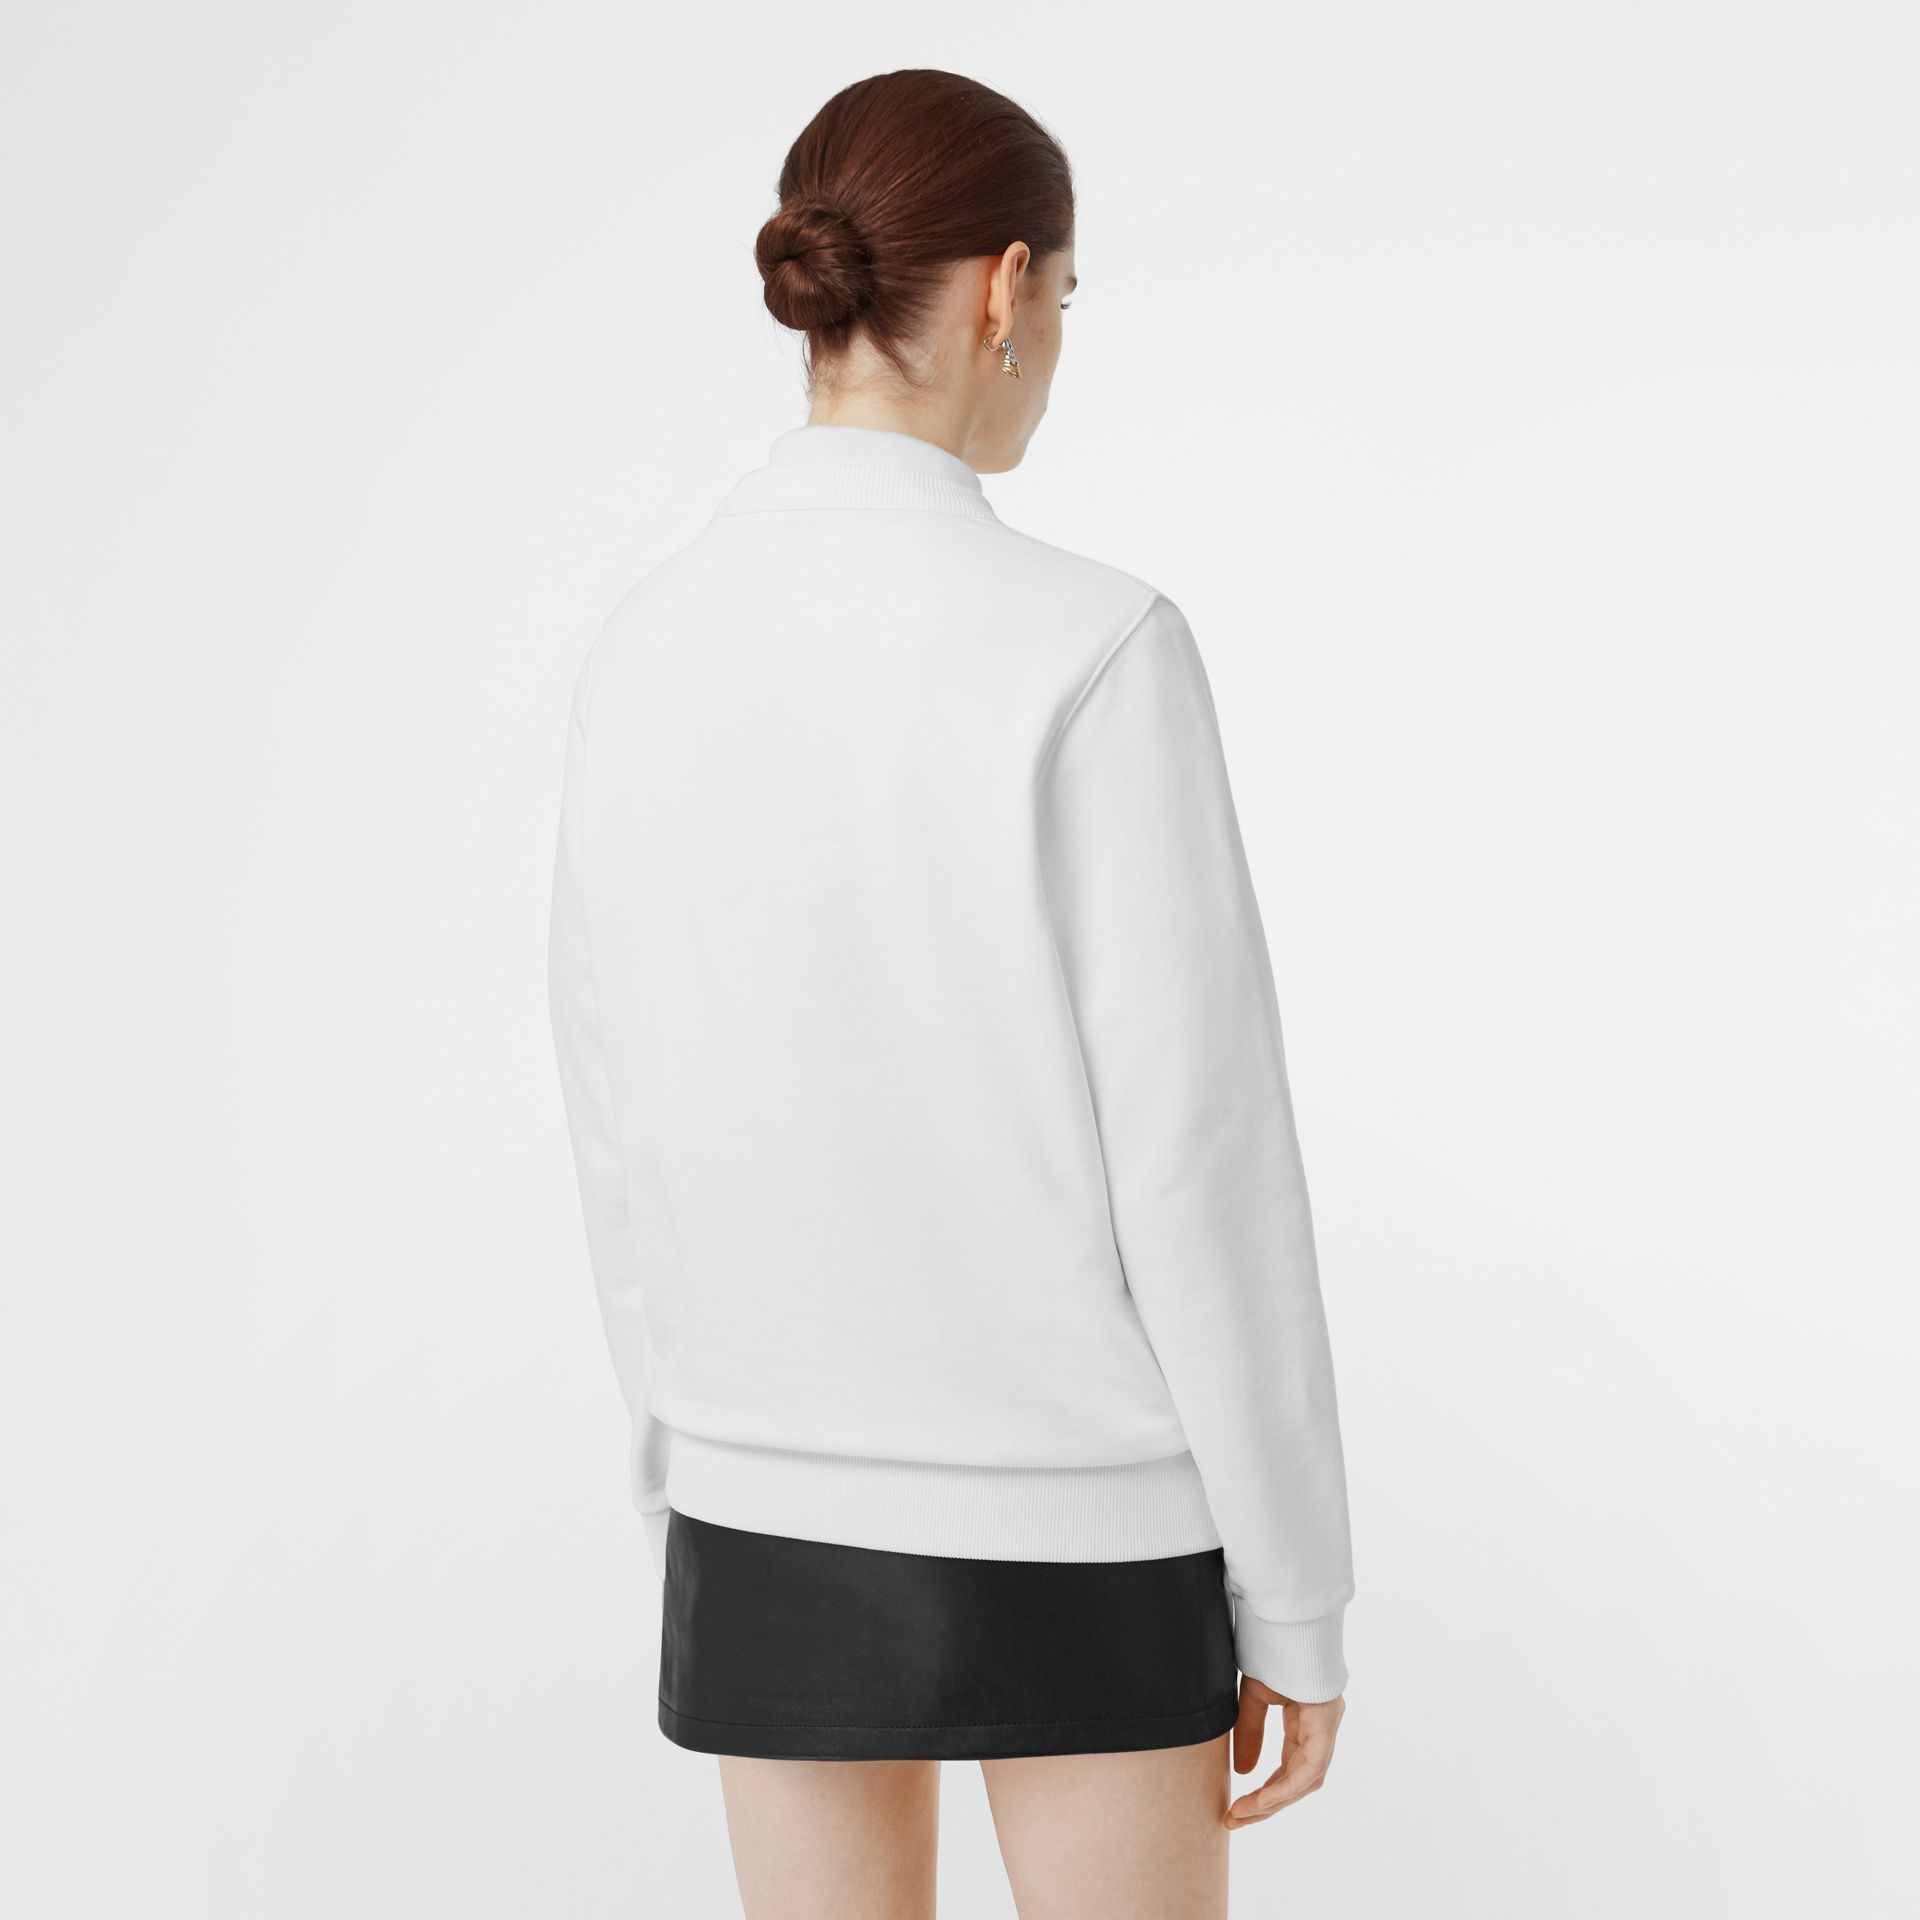 Sweat-shirt en coton avec logo (Blanc) - Femme | Burberry - photo de la galerie 2